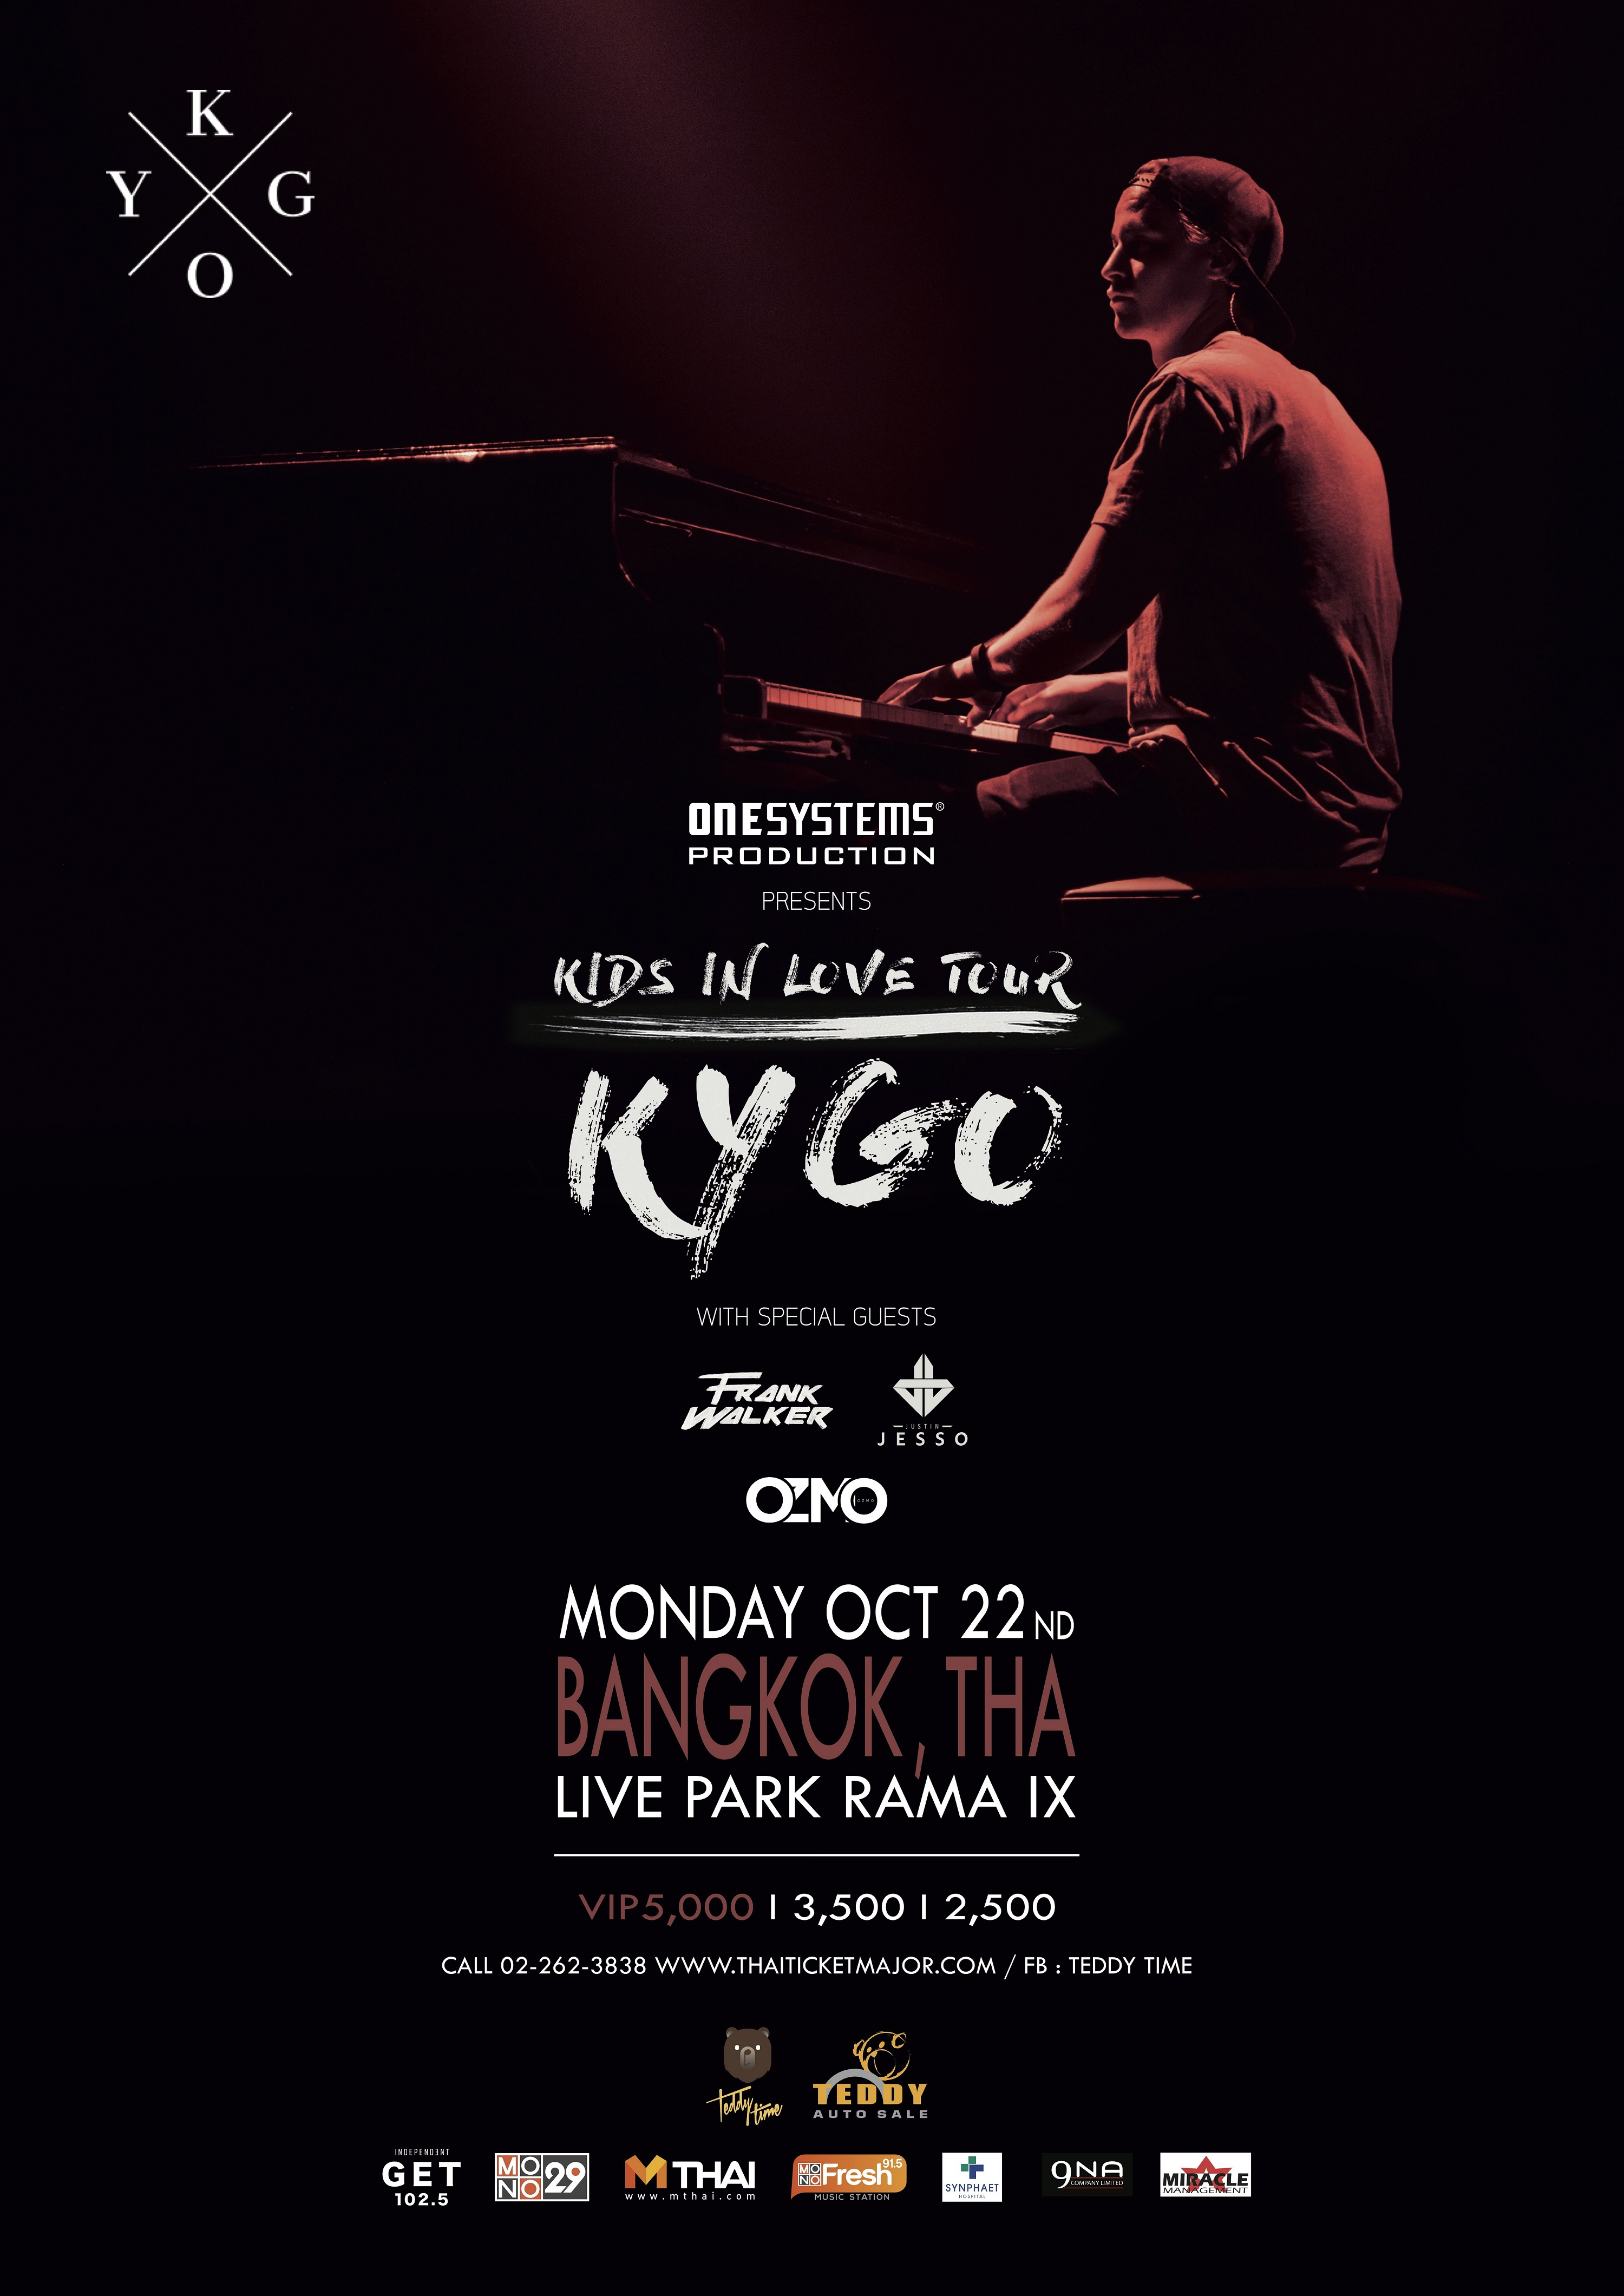 """23. Poster Concert """"One Systems Production Presents Kygo Kids In Love Tour"""""""